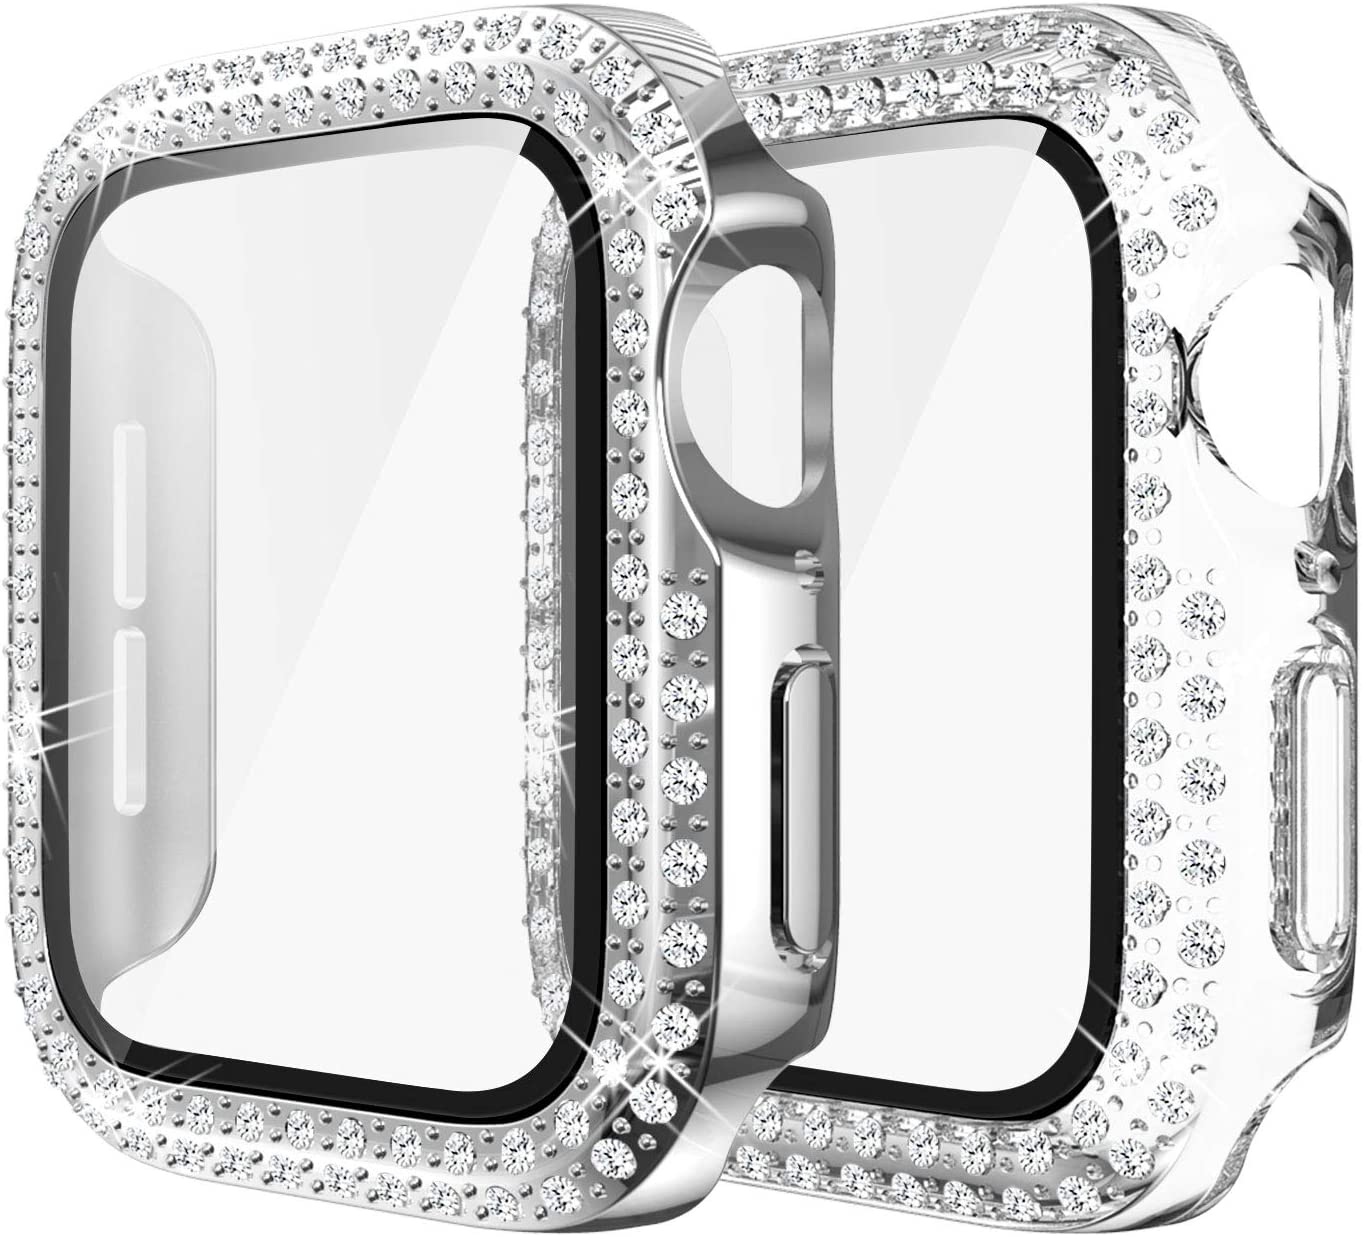 Yolovie (2-Pack) Compatible for Apple Watch Case with Screen Protector 42mm Series 3/2/1, Bling Cover Diamonds Rhinestone Bumper Protective Frame for iWatch Girl Women (Clear/Silver)